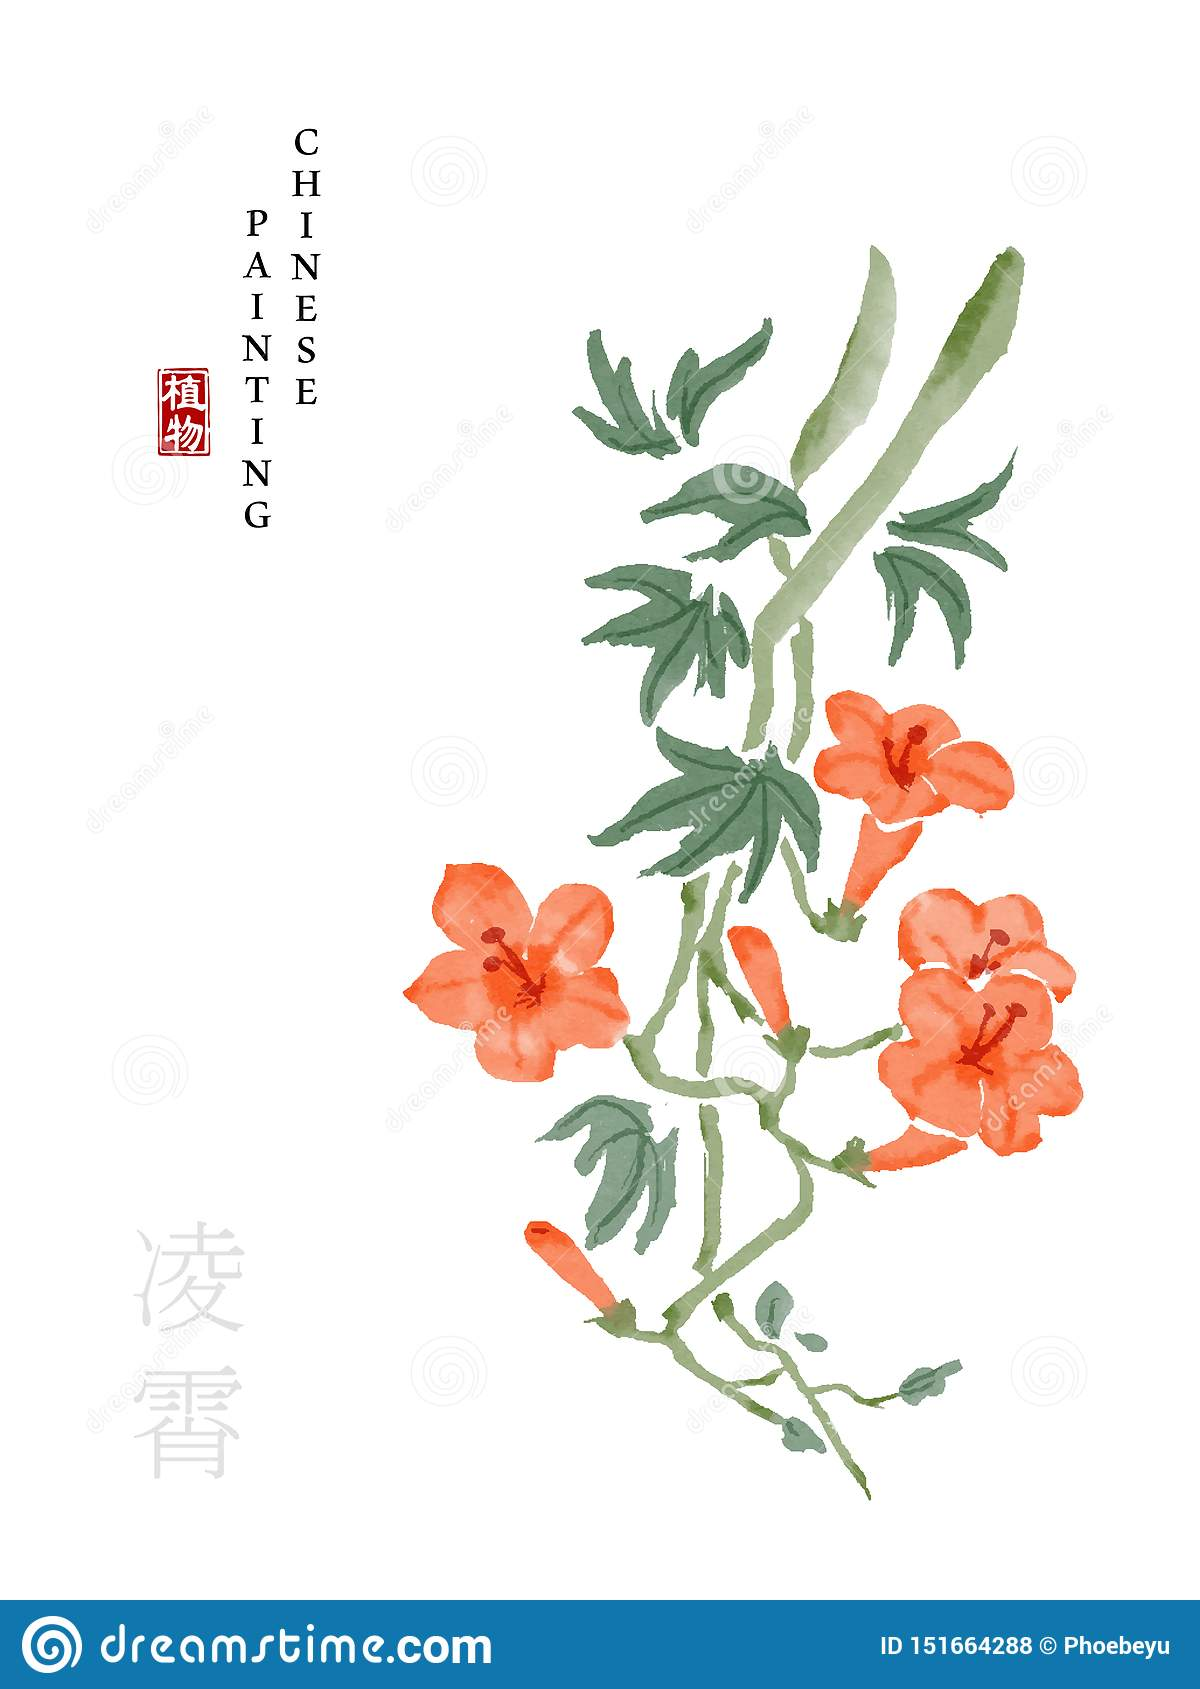 Watercolor Chinese ink paint art illustration nature plant from The Book of Songs Chinese trumpet creeper. Translation for the